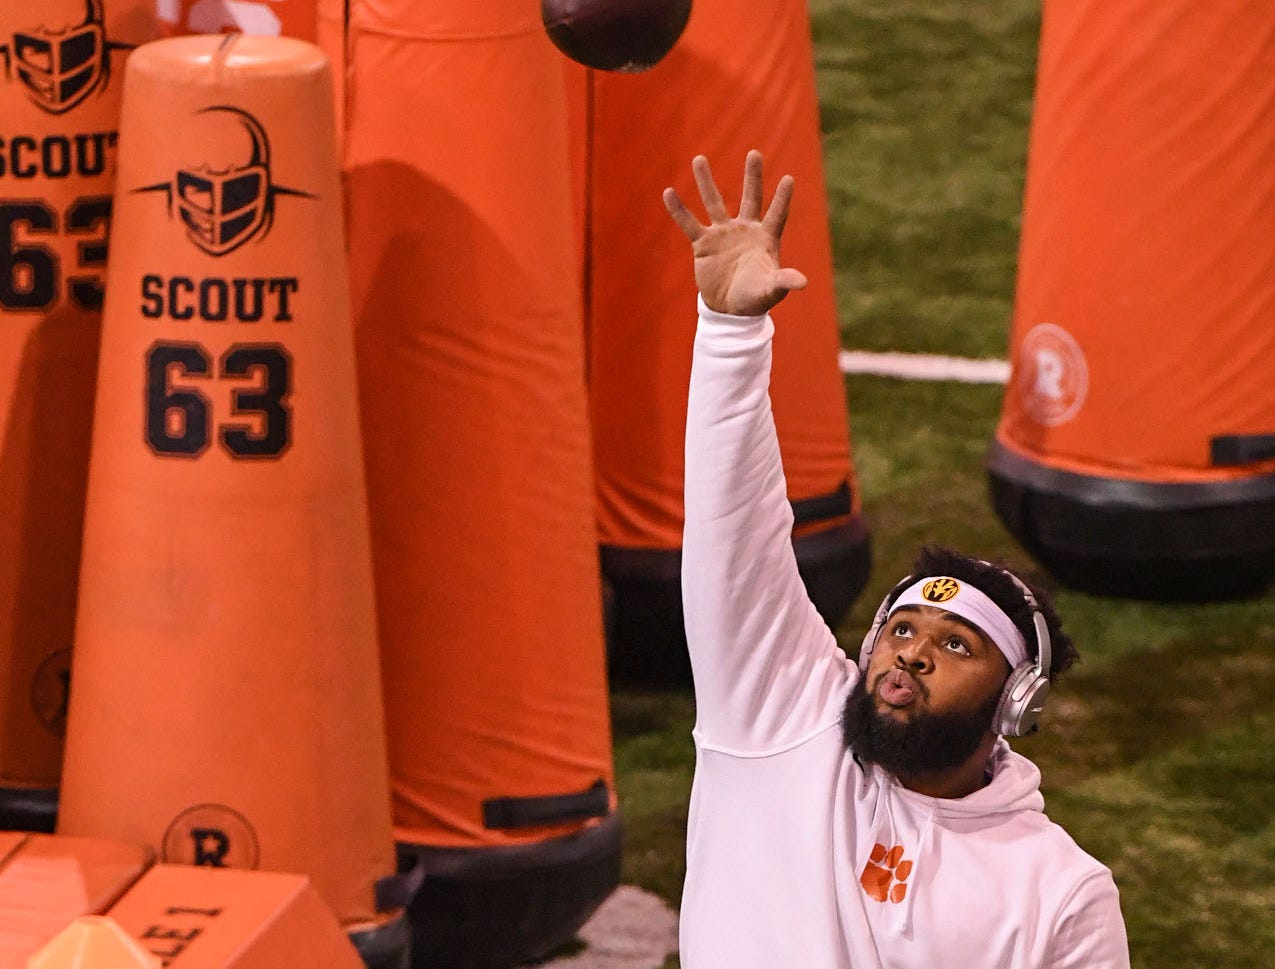 Defensive lineman Christian Wilkins reaches for a one-handed catch warming up for Clemson Pro Day at the Poe Indoor Facility in Clemson, S.C. Thursday, March 14, 2019.